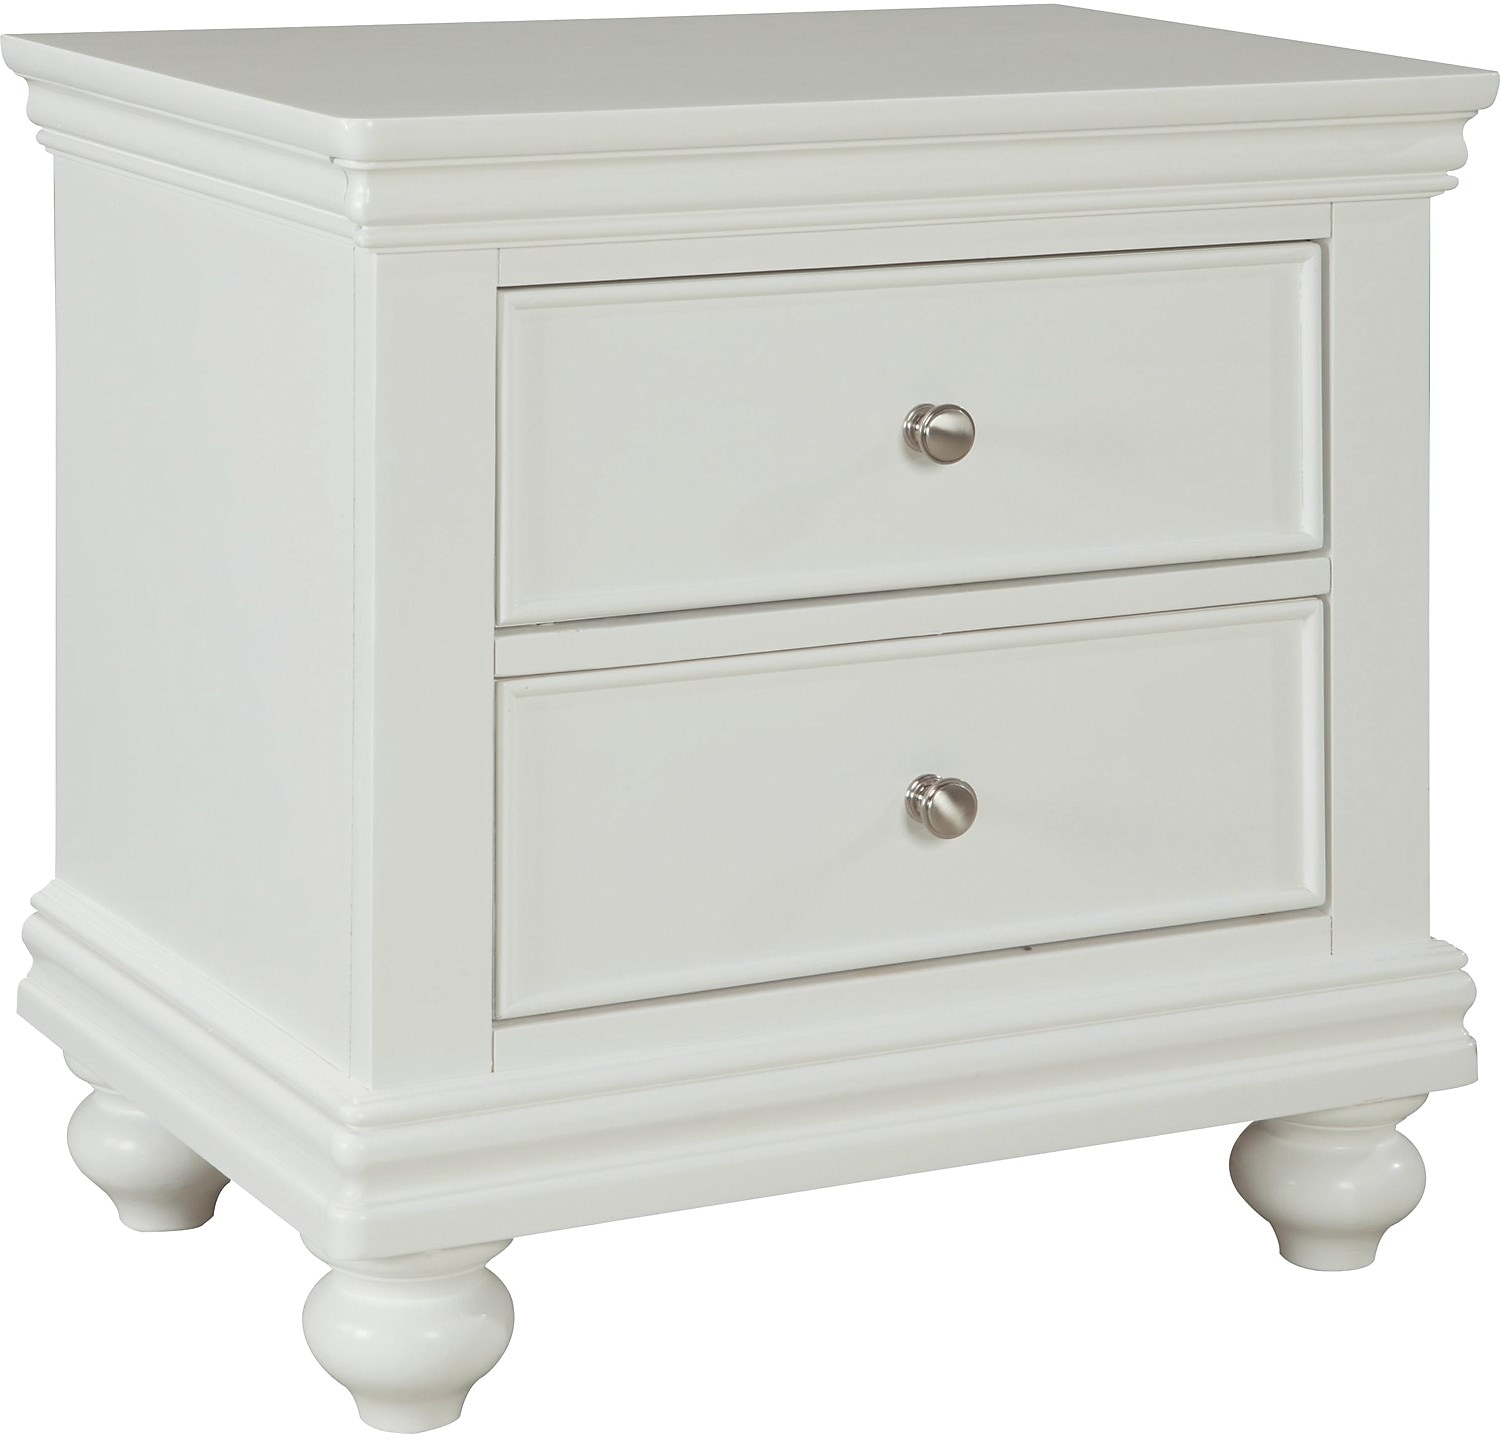 Bridgeport nightstand white the brick Things to use as nightstands